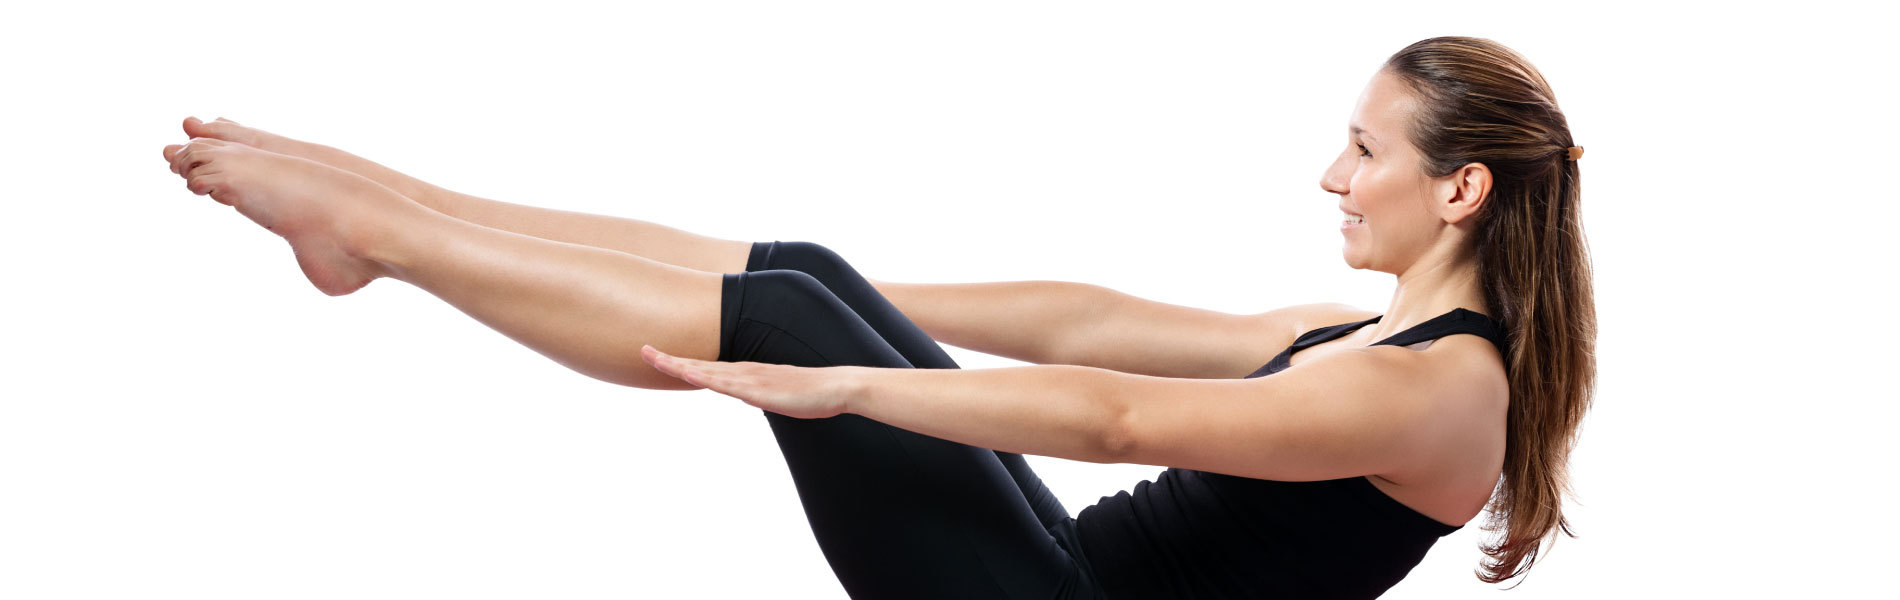 A Beginner's Guide to Pilates: The History and Benefits